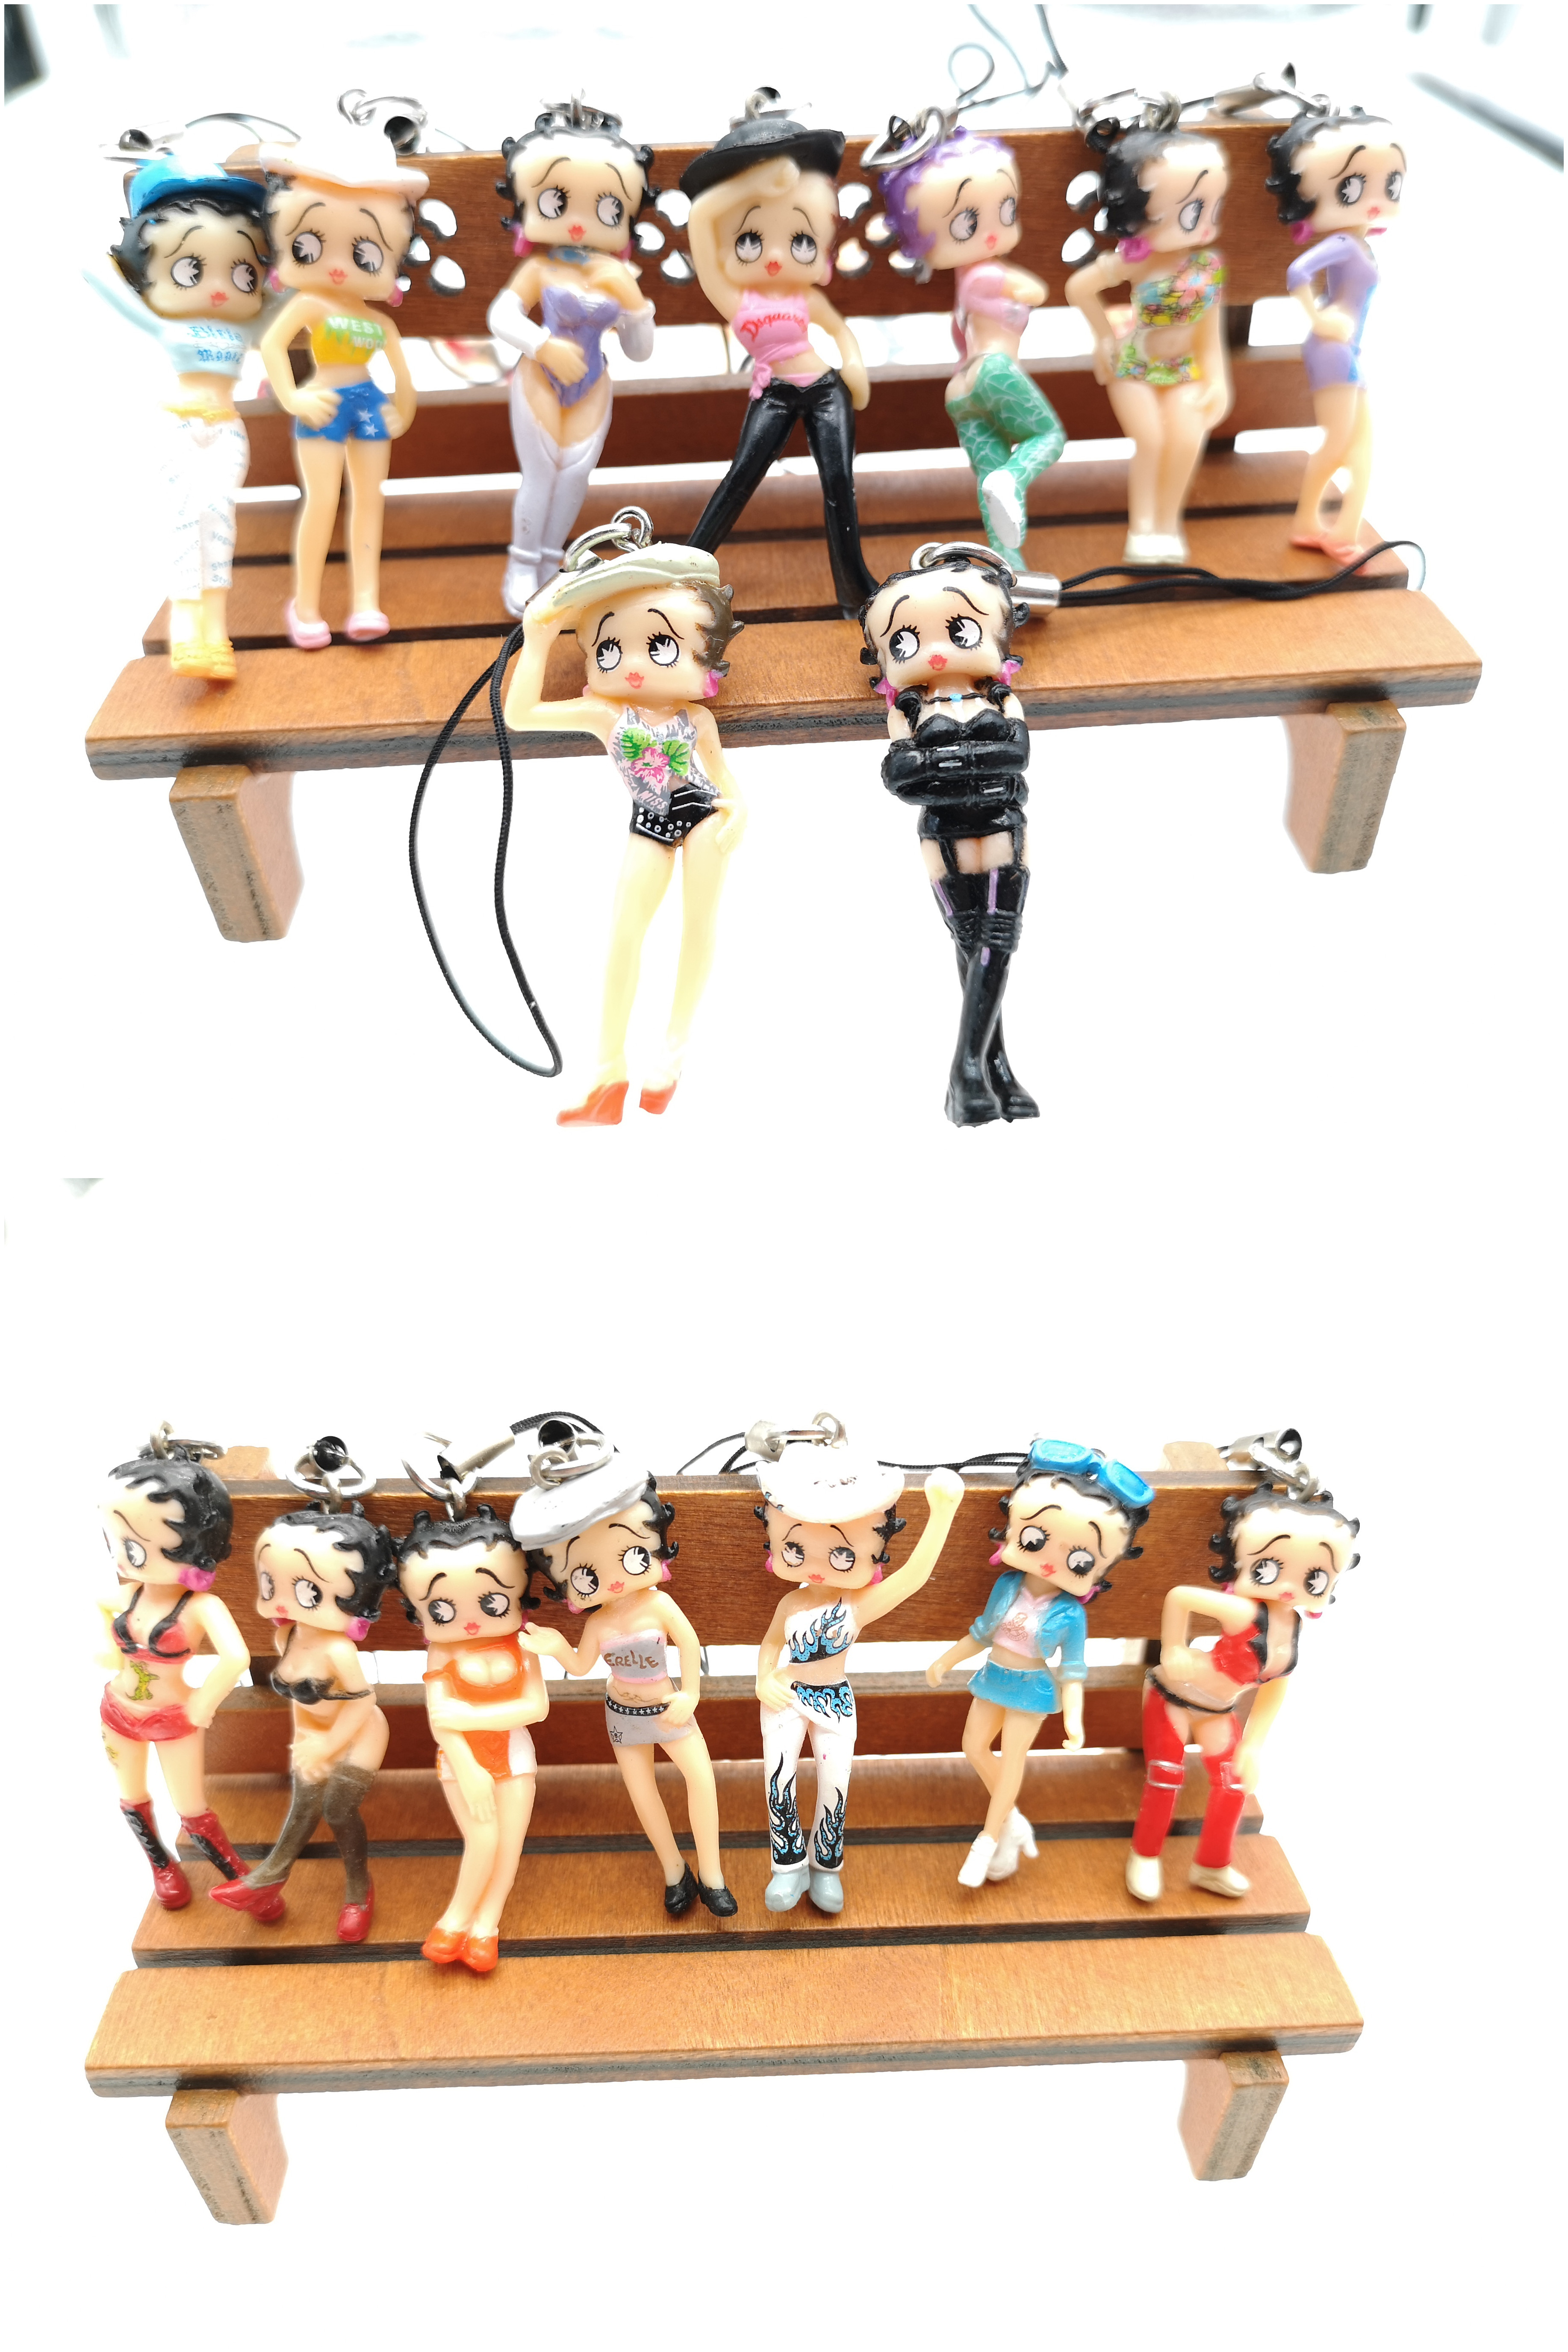 Free shipping 1 set <font><b>16</b></font> pcs <font><b>sexy</b></font> color Betty boop mixed DIY <font><b>figures</b></font> mobile phone strap Charms women kids gifts image